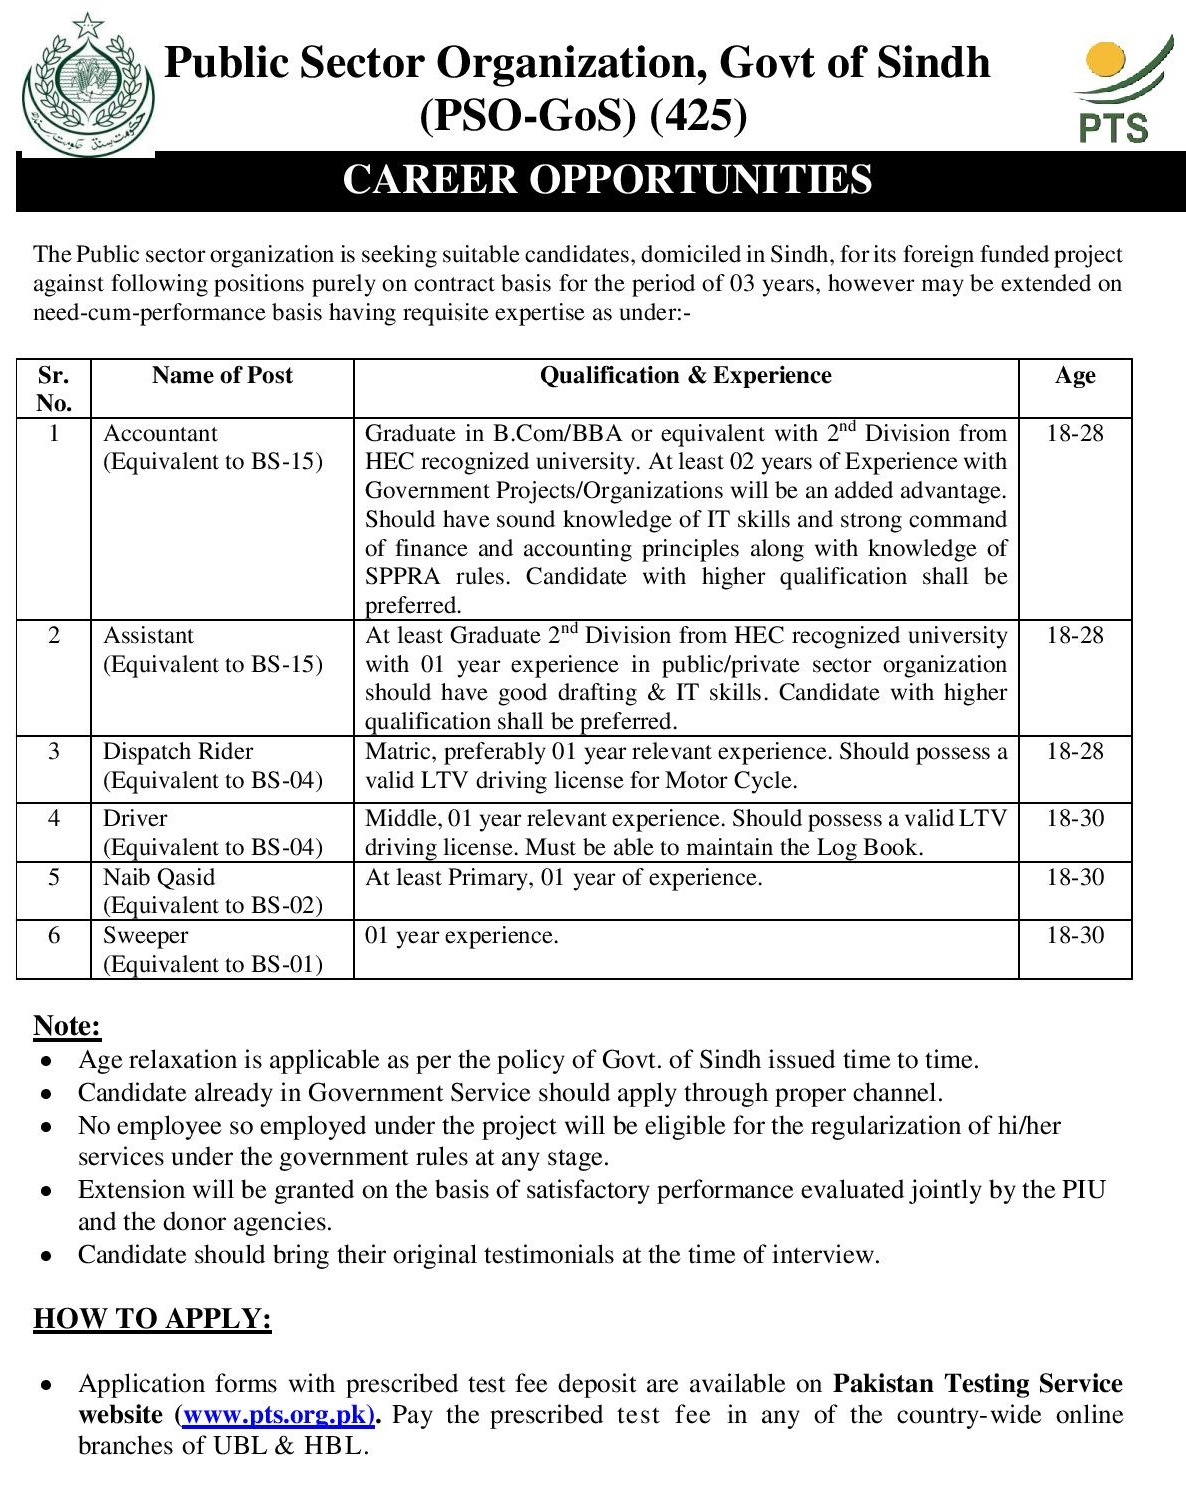 Public Sector PTS Jobs 2020 Application Form Roll No Slip